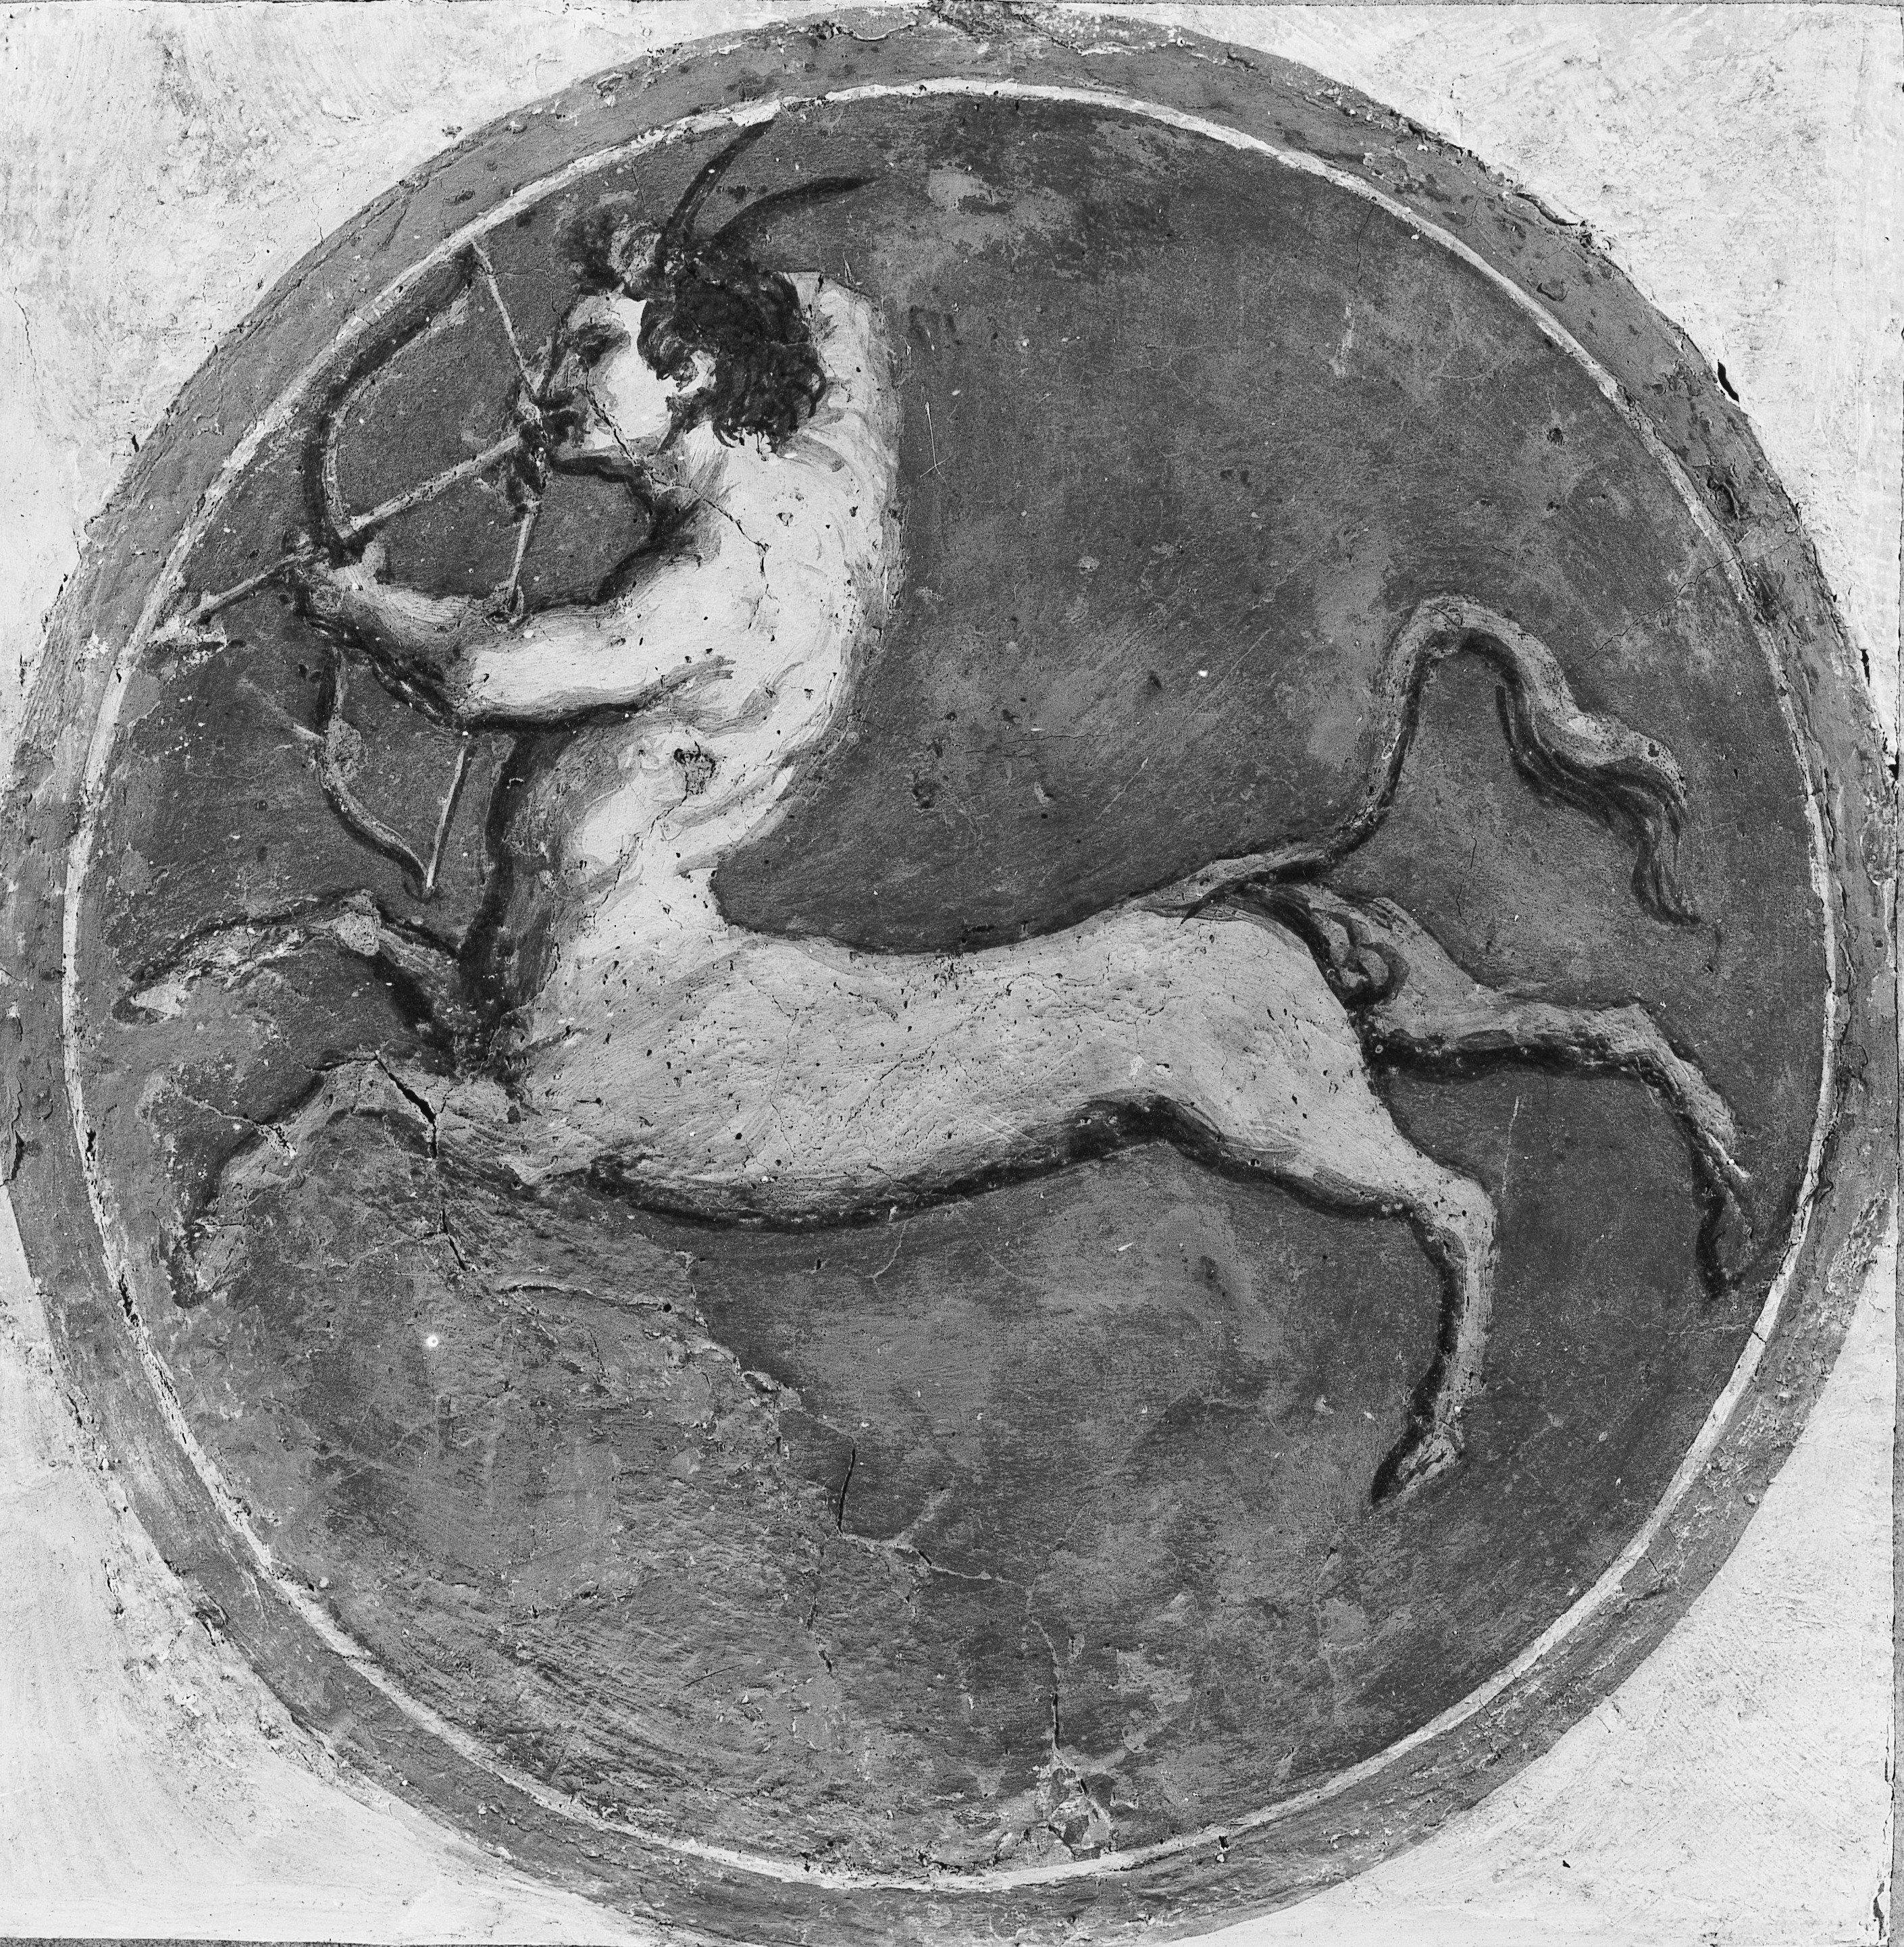 Saturn in Sagittarius centaur